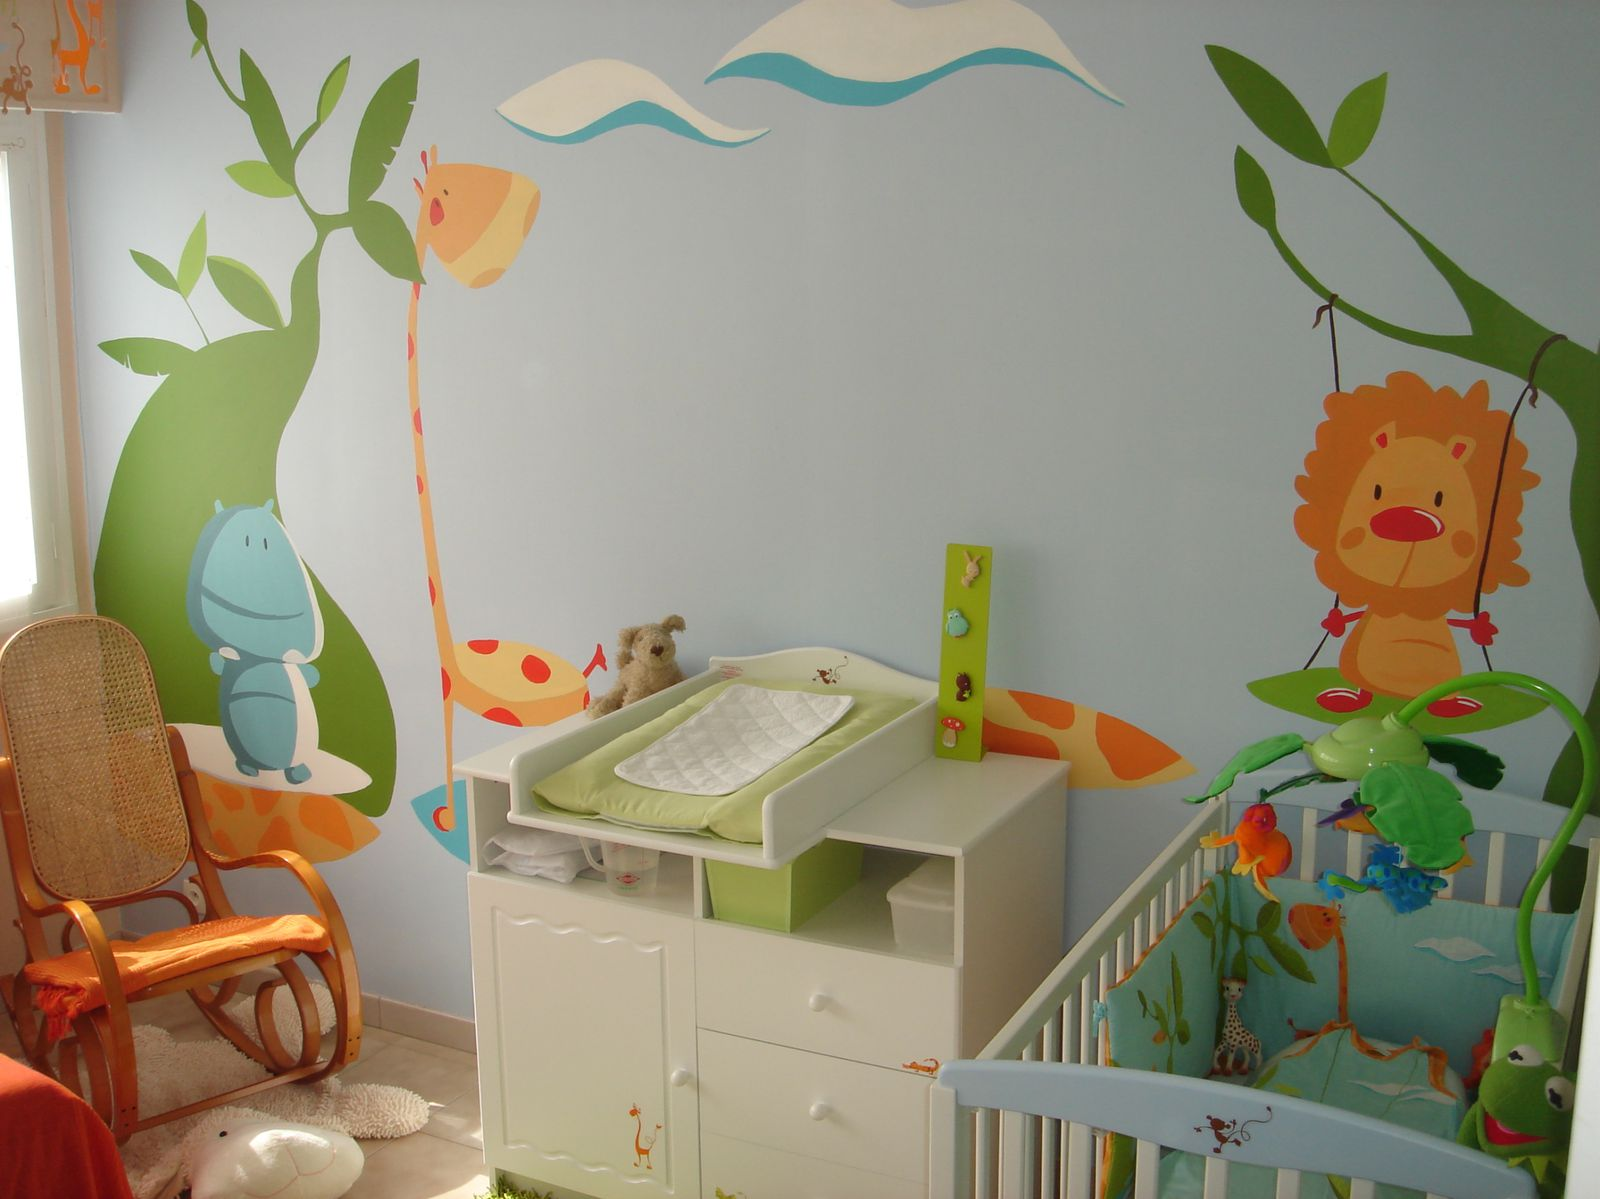 Photos bild galeria decoration murale chambre bebe for Deco murale chambre bebe